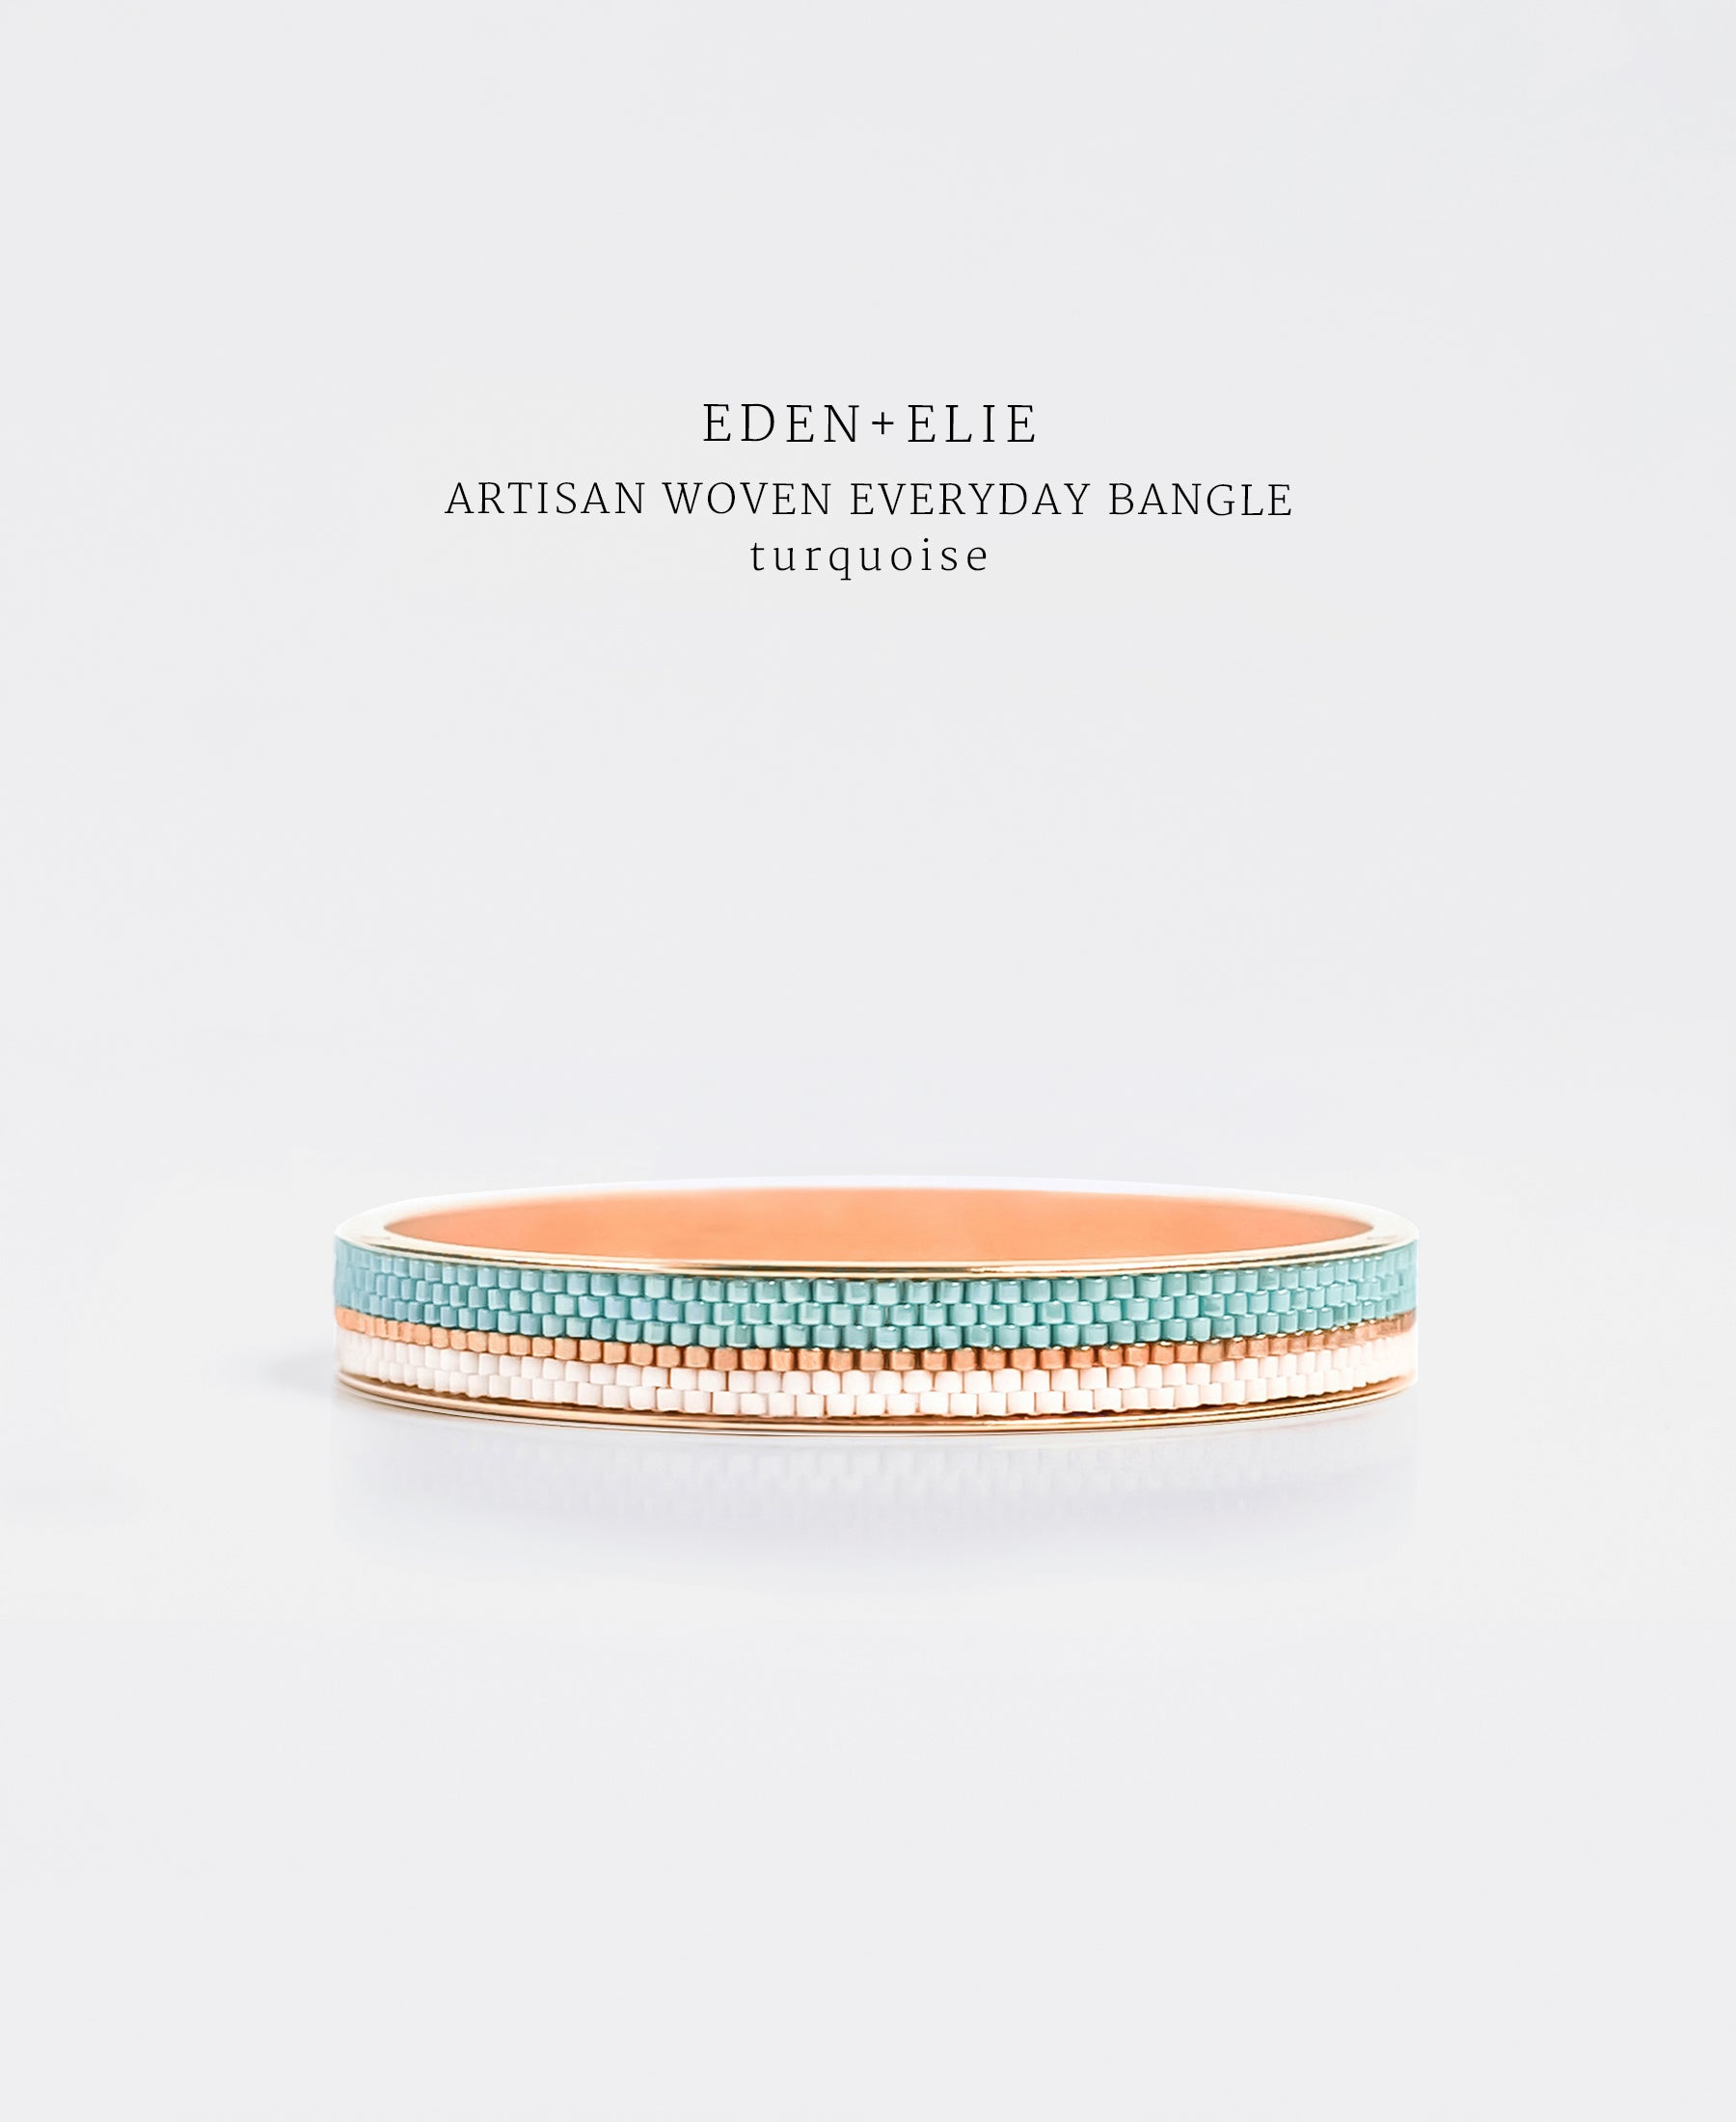 EDEN + ELIE gold plated jewelry Everyday gold narrow bangle - turquoise